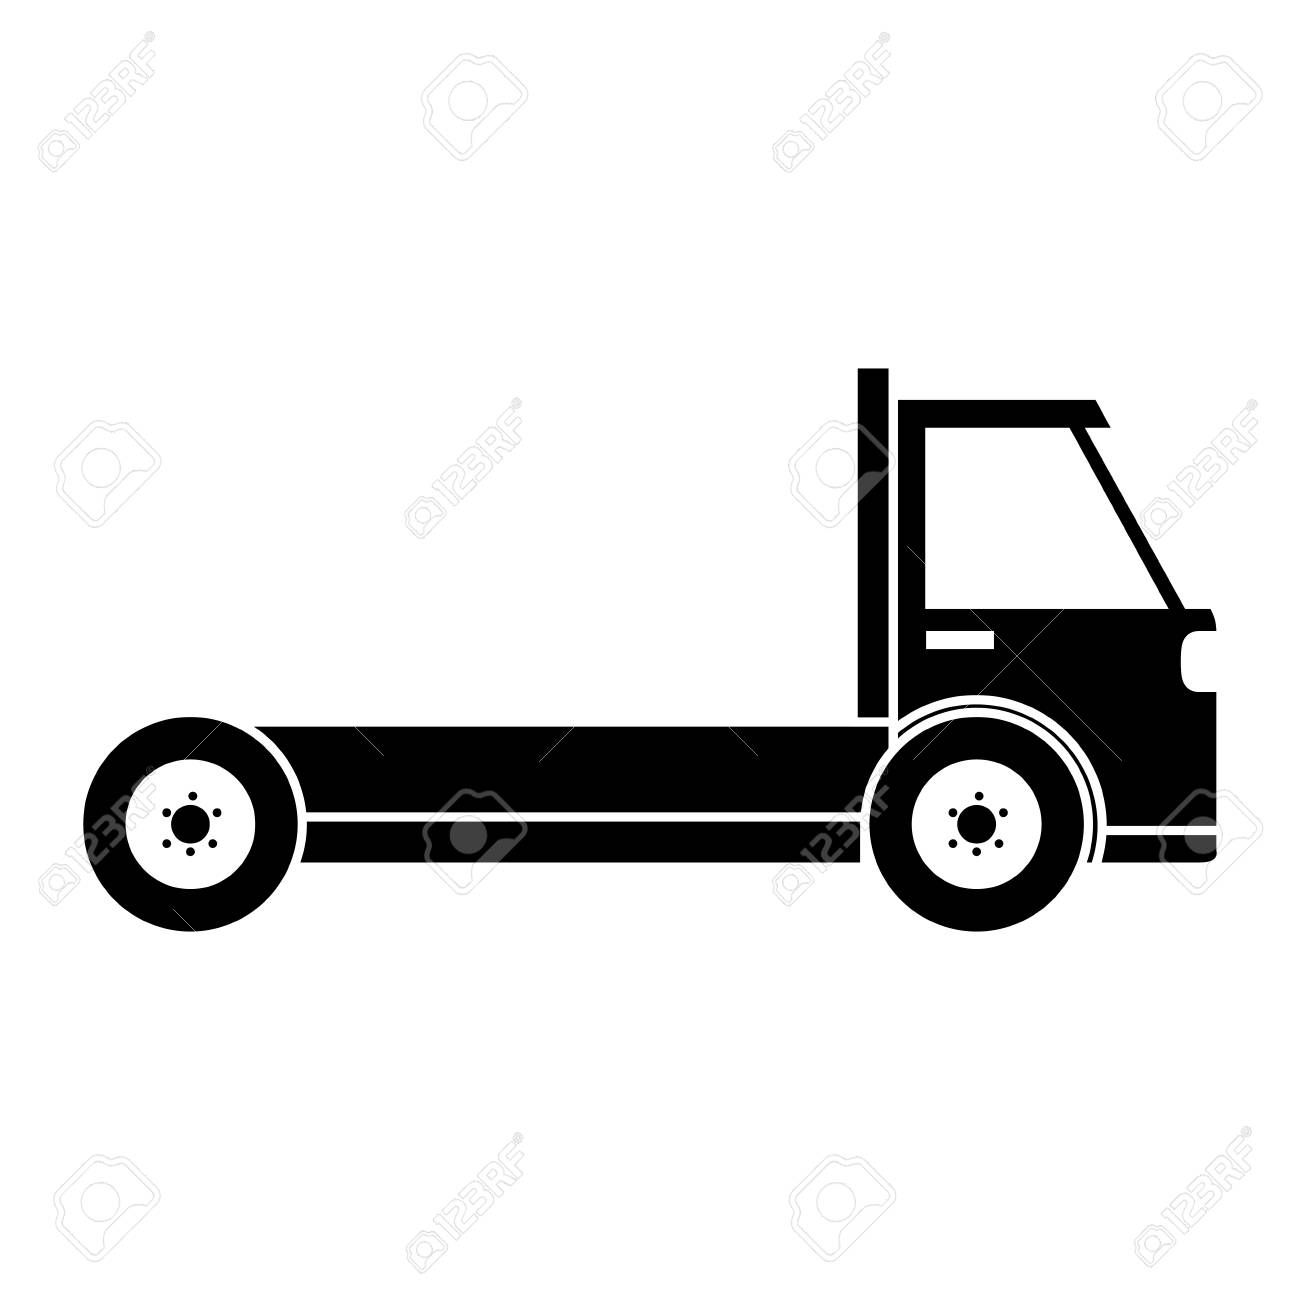 Delivery Truck Vehicle Icon Vector Illustration Design